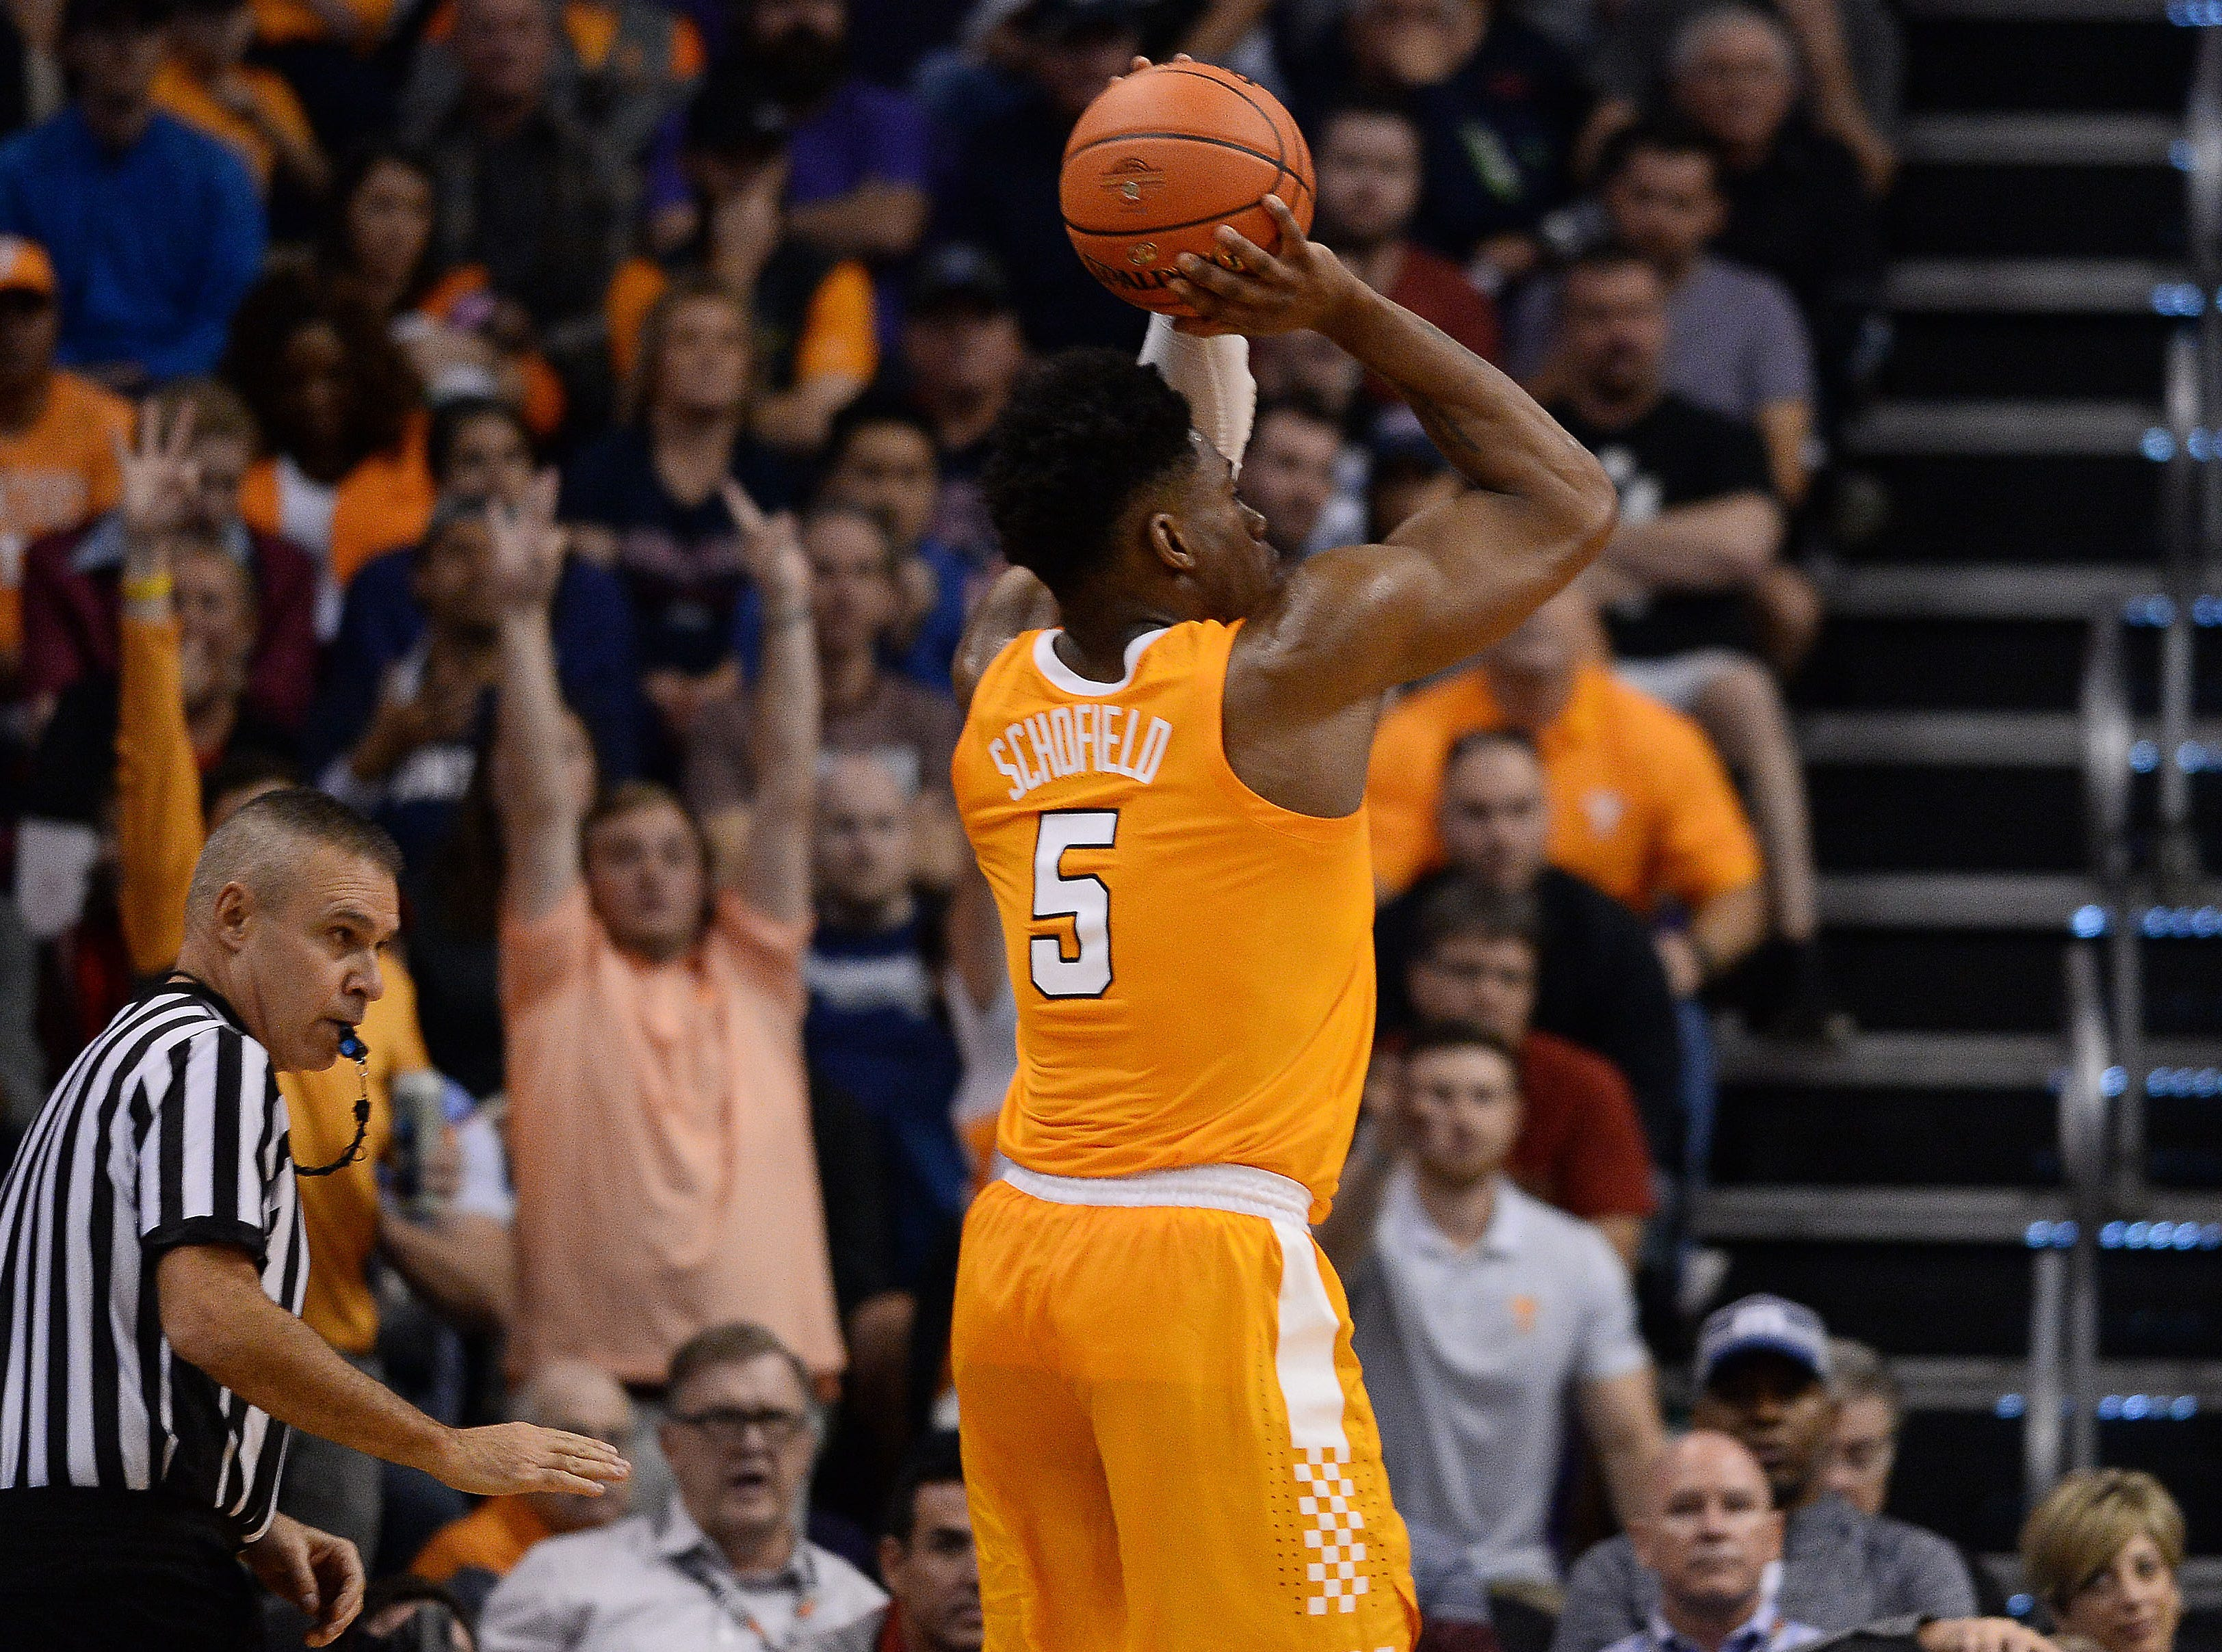 Dec 9, 2018; Phoenix, AZ, USA; Tennessee Volunteers guard Admiral Schofield (5) shoots and makes a three point basket against the Gonzaga Bulldogs during the second half at Talking Stick Resort Arena.